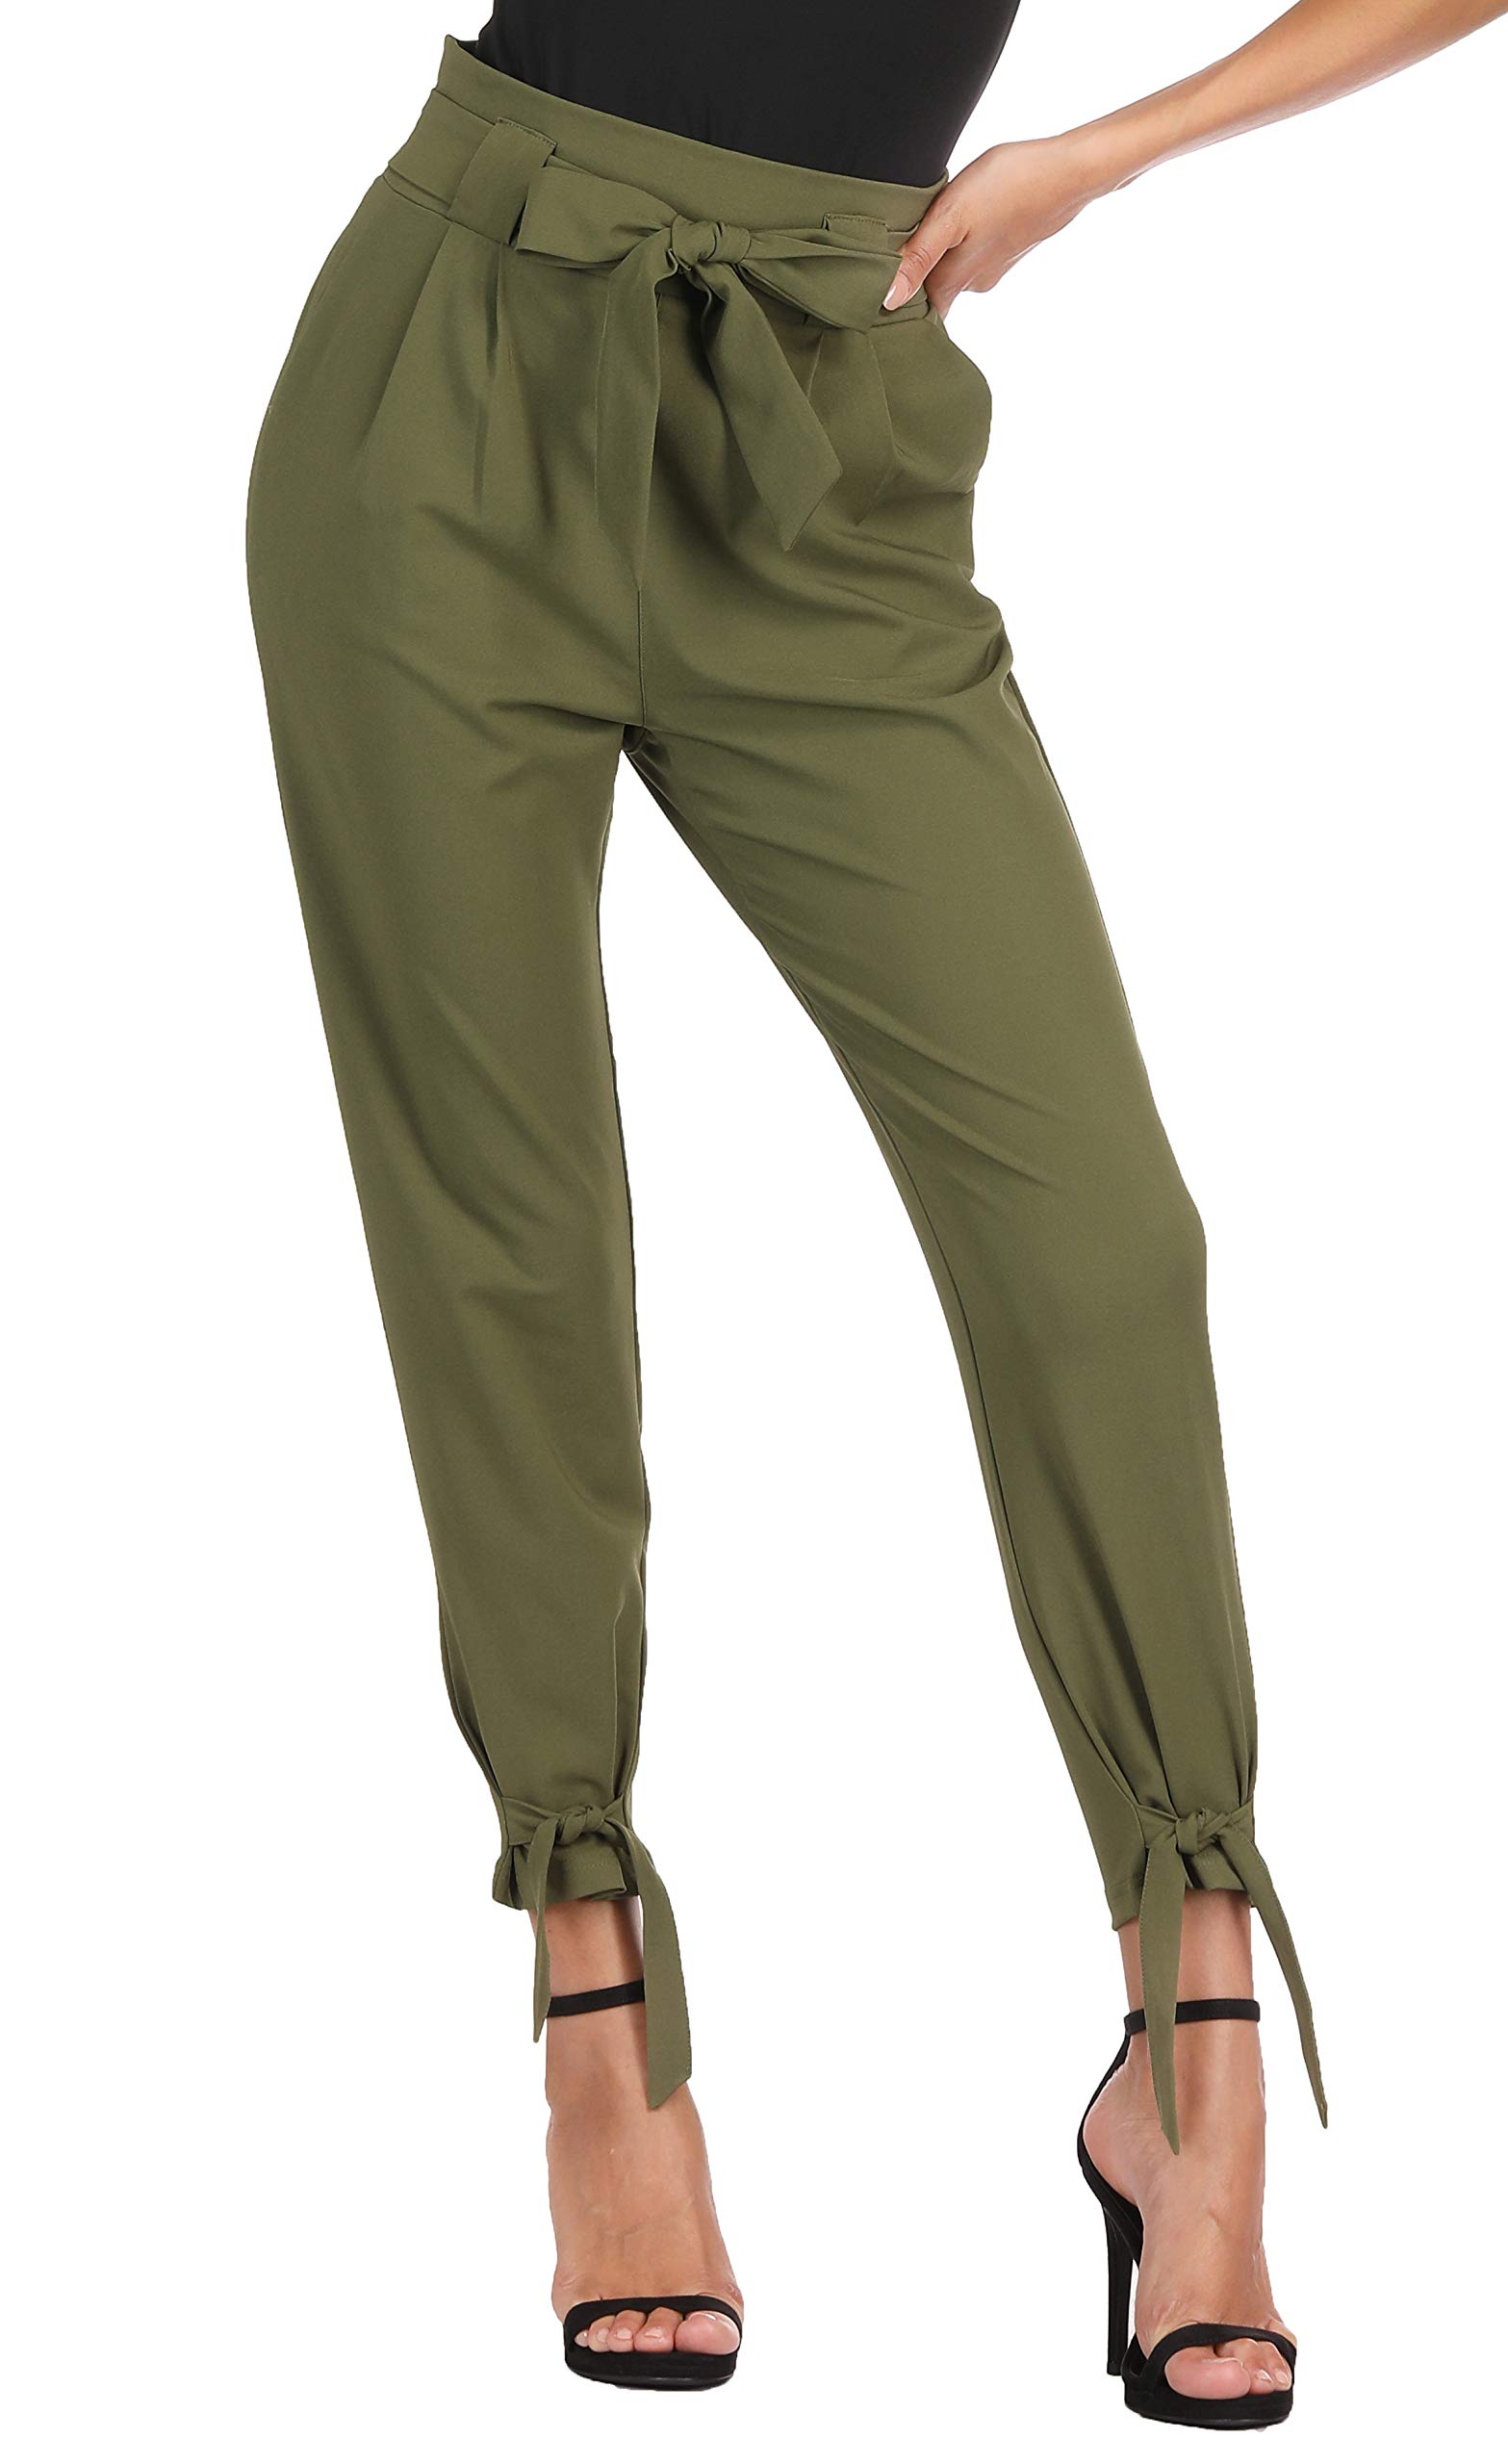 GRACE KARIN Women Casual Pleated High Waist Belted Bow Ties Paper Bags Pants M, Cl903 Style-army Green by GRACE KARIN